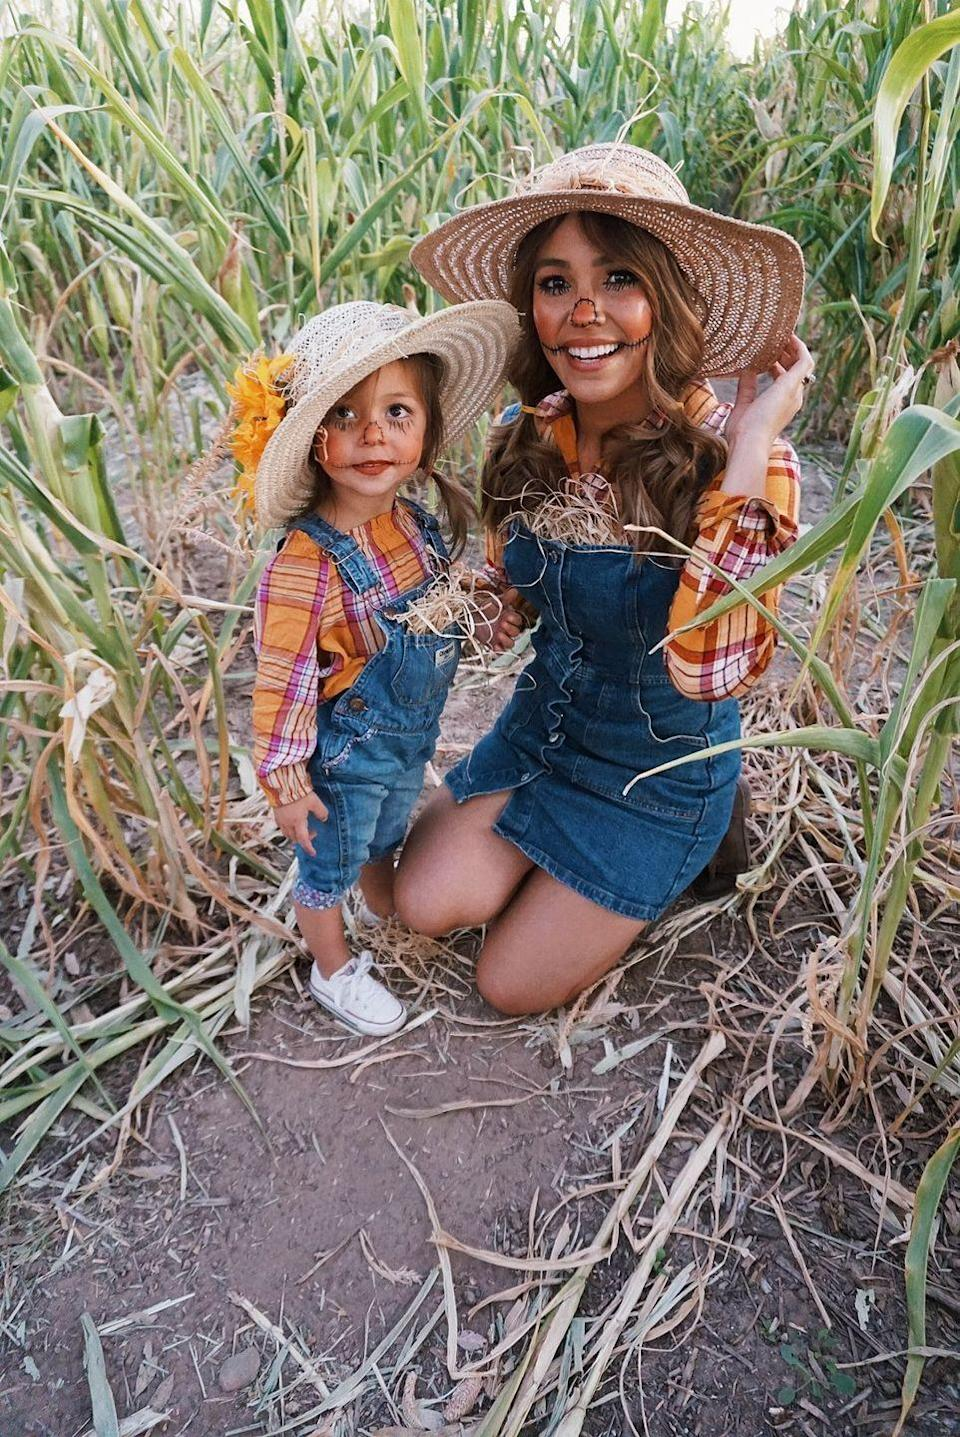 "<p>Nothing's cuter than dressing your mini-me in a matching ensemble. Find coordinating flannels, overalls, and straw hats to perfect this mother-daughter costume. </p><p><em><a href=""http://latelywithalexa.com/2019/10/23/halloween-2019-scarecrow-edition/"" rel=""nofollow noopener"" target=""_blank"" data-ylk=""slk:Get the tutorial at Lately with Alexa »"" class=""link rapid-noclick-resp"">Get the tutorial at Lately with Alexa » </a></em></p><p><strong>RELATED:</strong> <a href=""https://www.goodhousekeeping.com/holidays/halloween-ideas/g29246741/mother-daughter-halloween-costumes/"" rel=""nofollow noopener"" target=""_blank"" data-ylk=""slk:The Best Mother-Daughter Halloween Costumes"" class=""link rapid-noclick-resp"">The Best Mother-Daughter Halloween Costumes </a></p>"